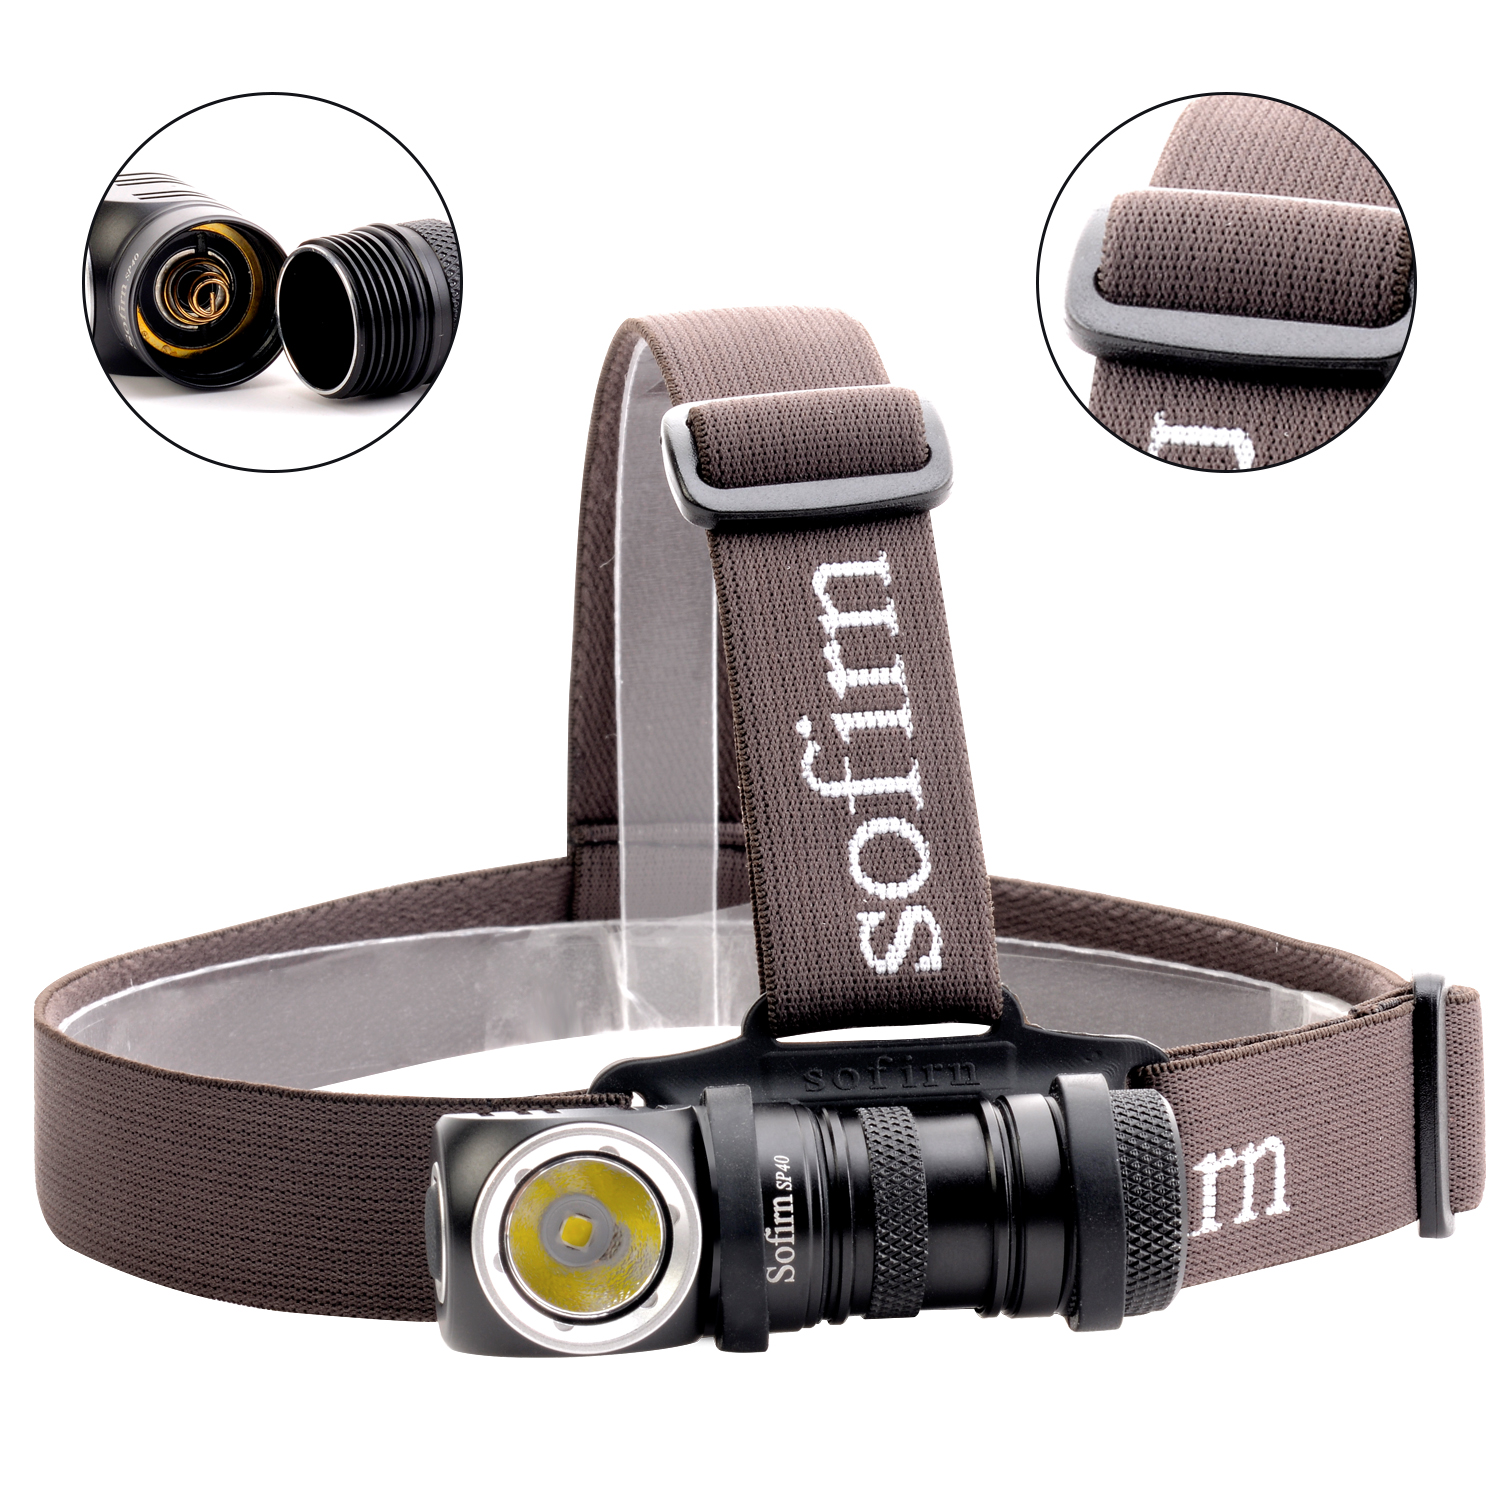 Sofirn SP40 LED Headlamp Cree XPL 1200lm 18650 USB Rechargeable Headlight 18350 Flashlight with Power Indicator Magnet Tail 2